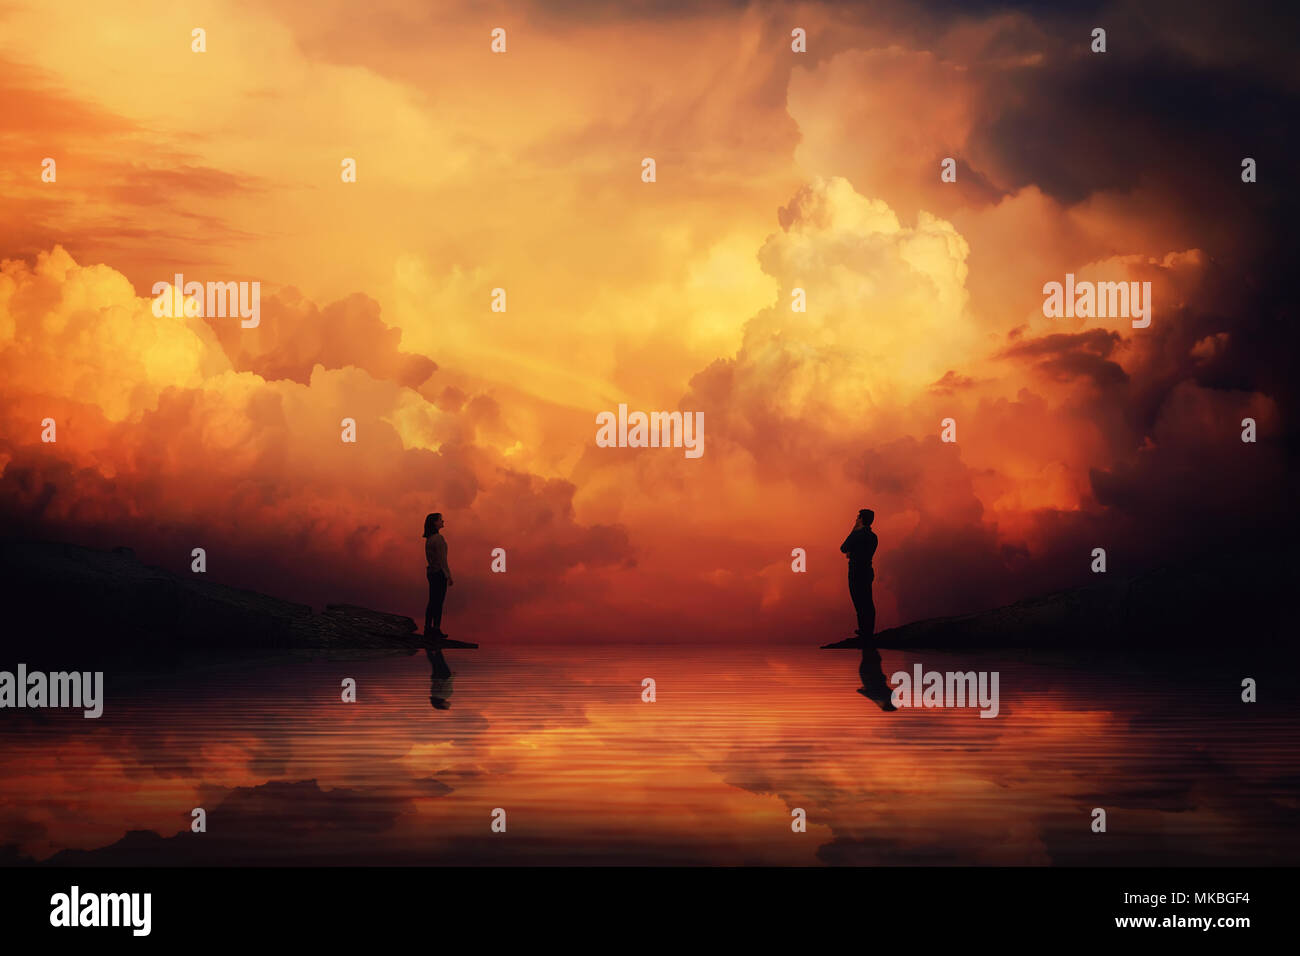 Man and woman stand on different sides of a river bank thinking how to reach each other over a scenery sunset background. Building an imaginary bridge - Stock Image